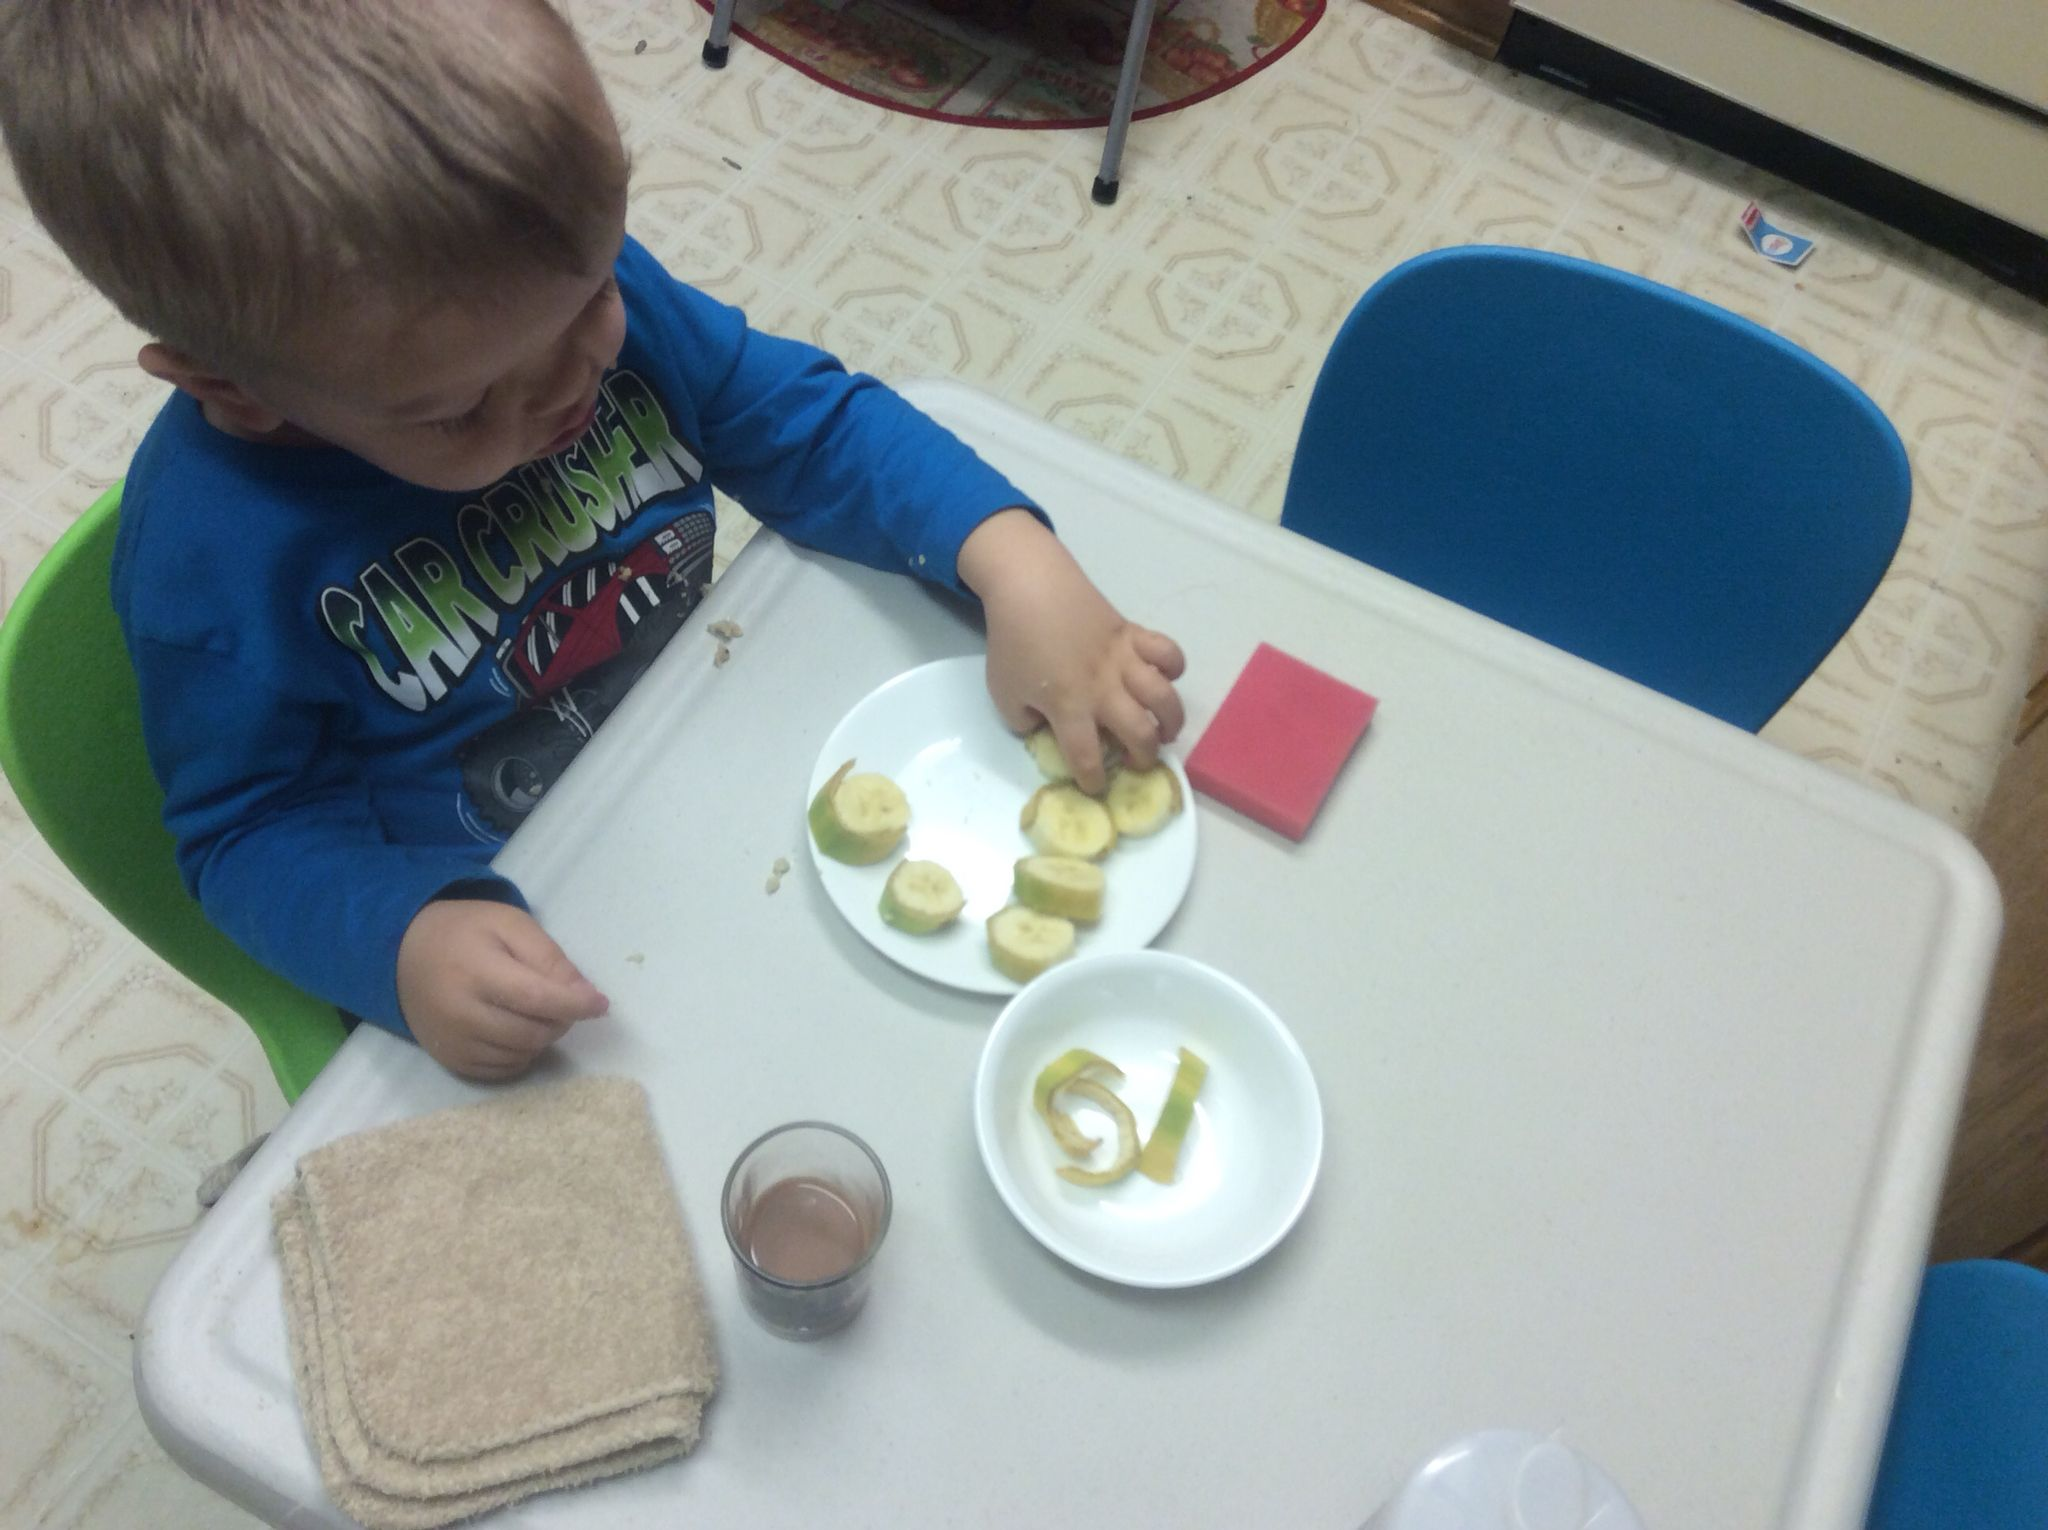 Montessori for special needs. Banana peeling. Independent feeding. Fine motor skills.